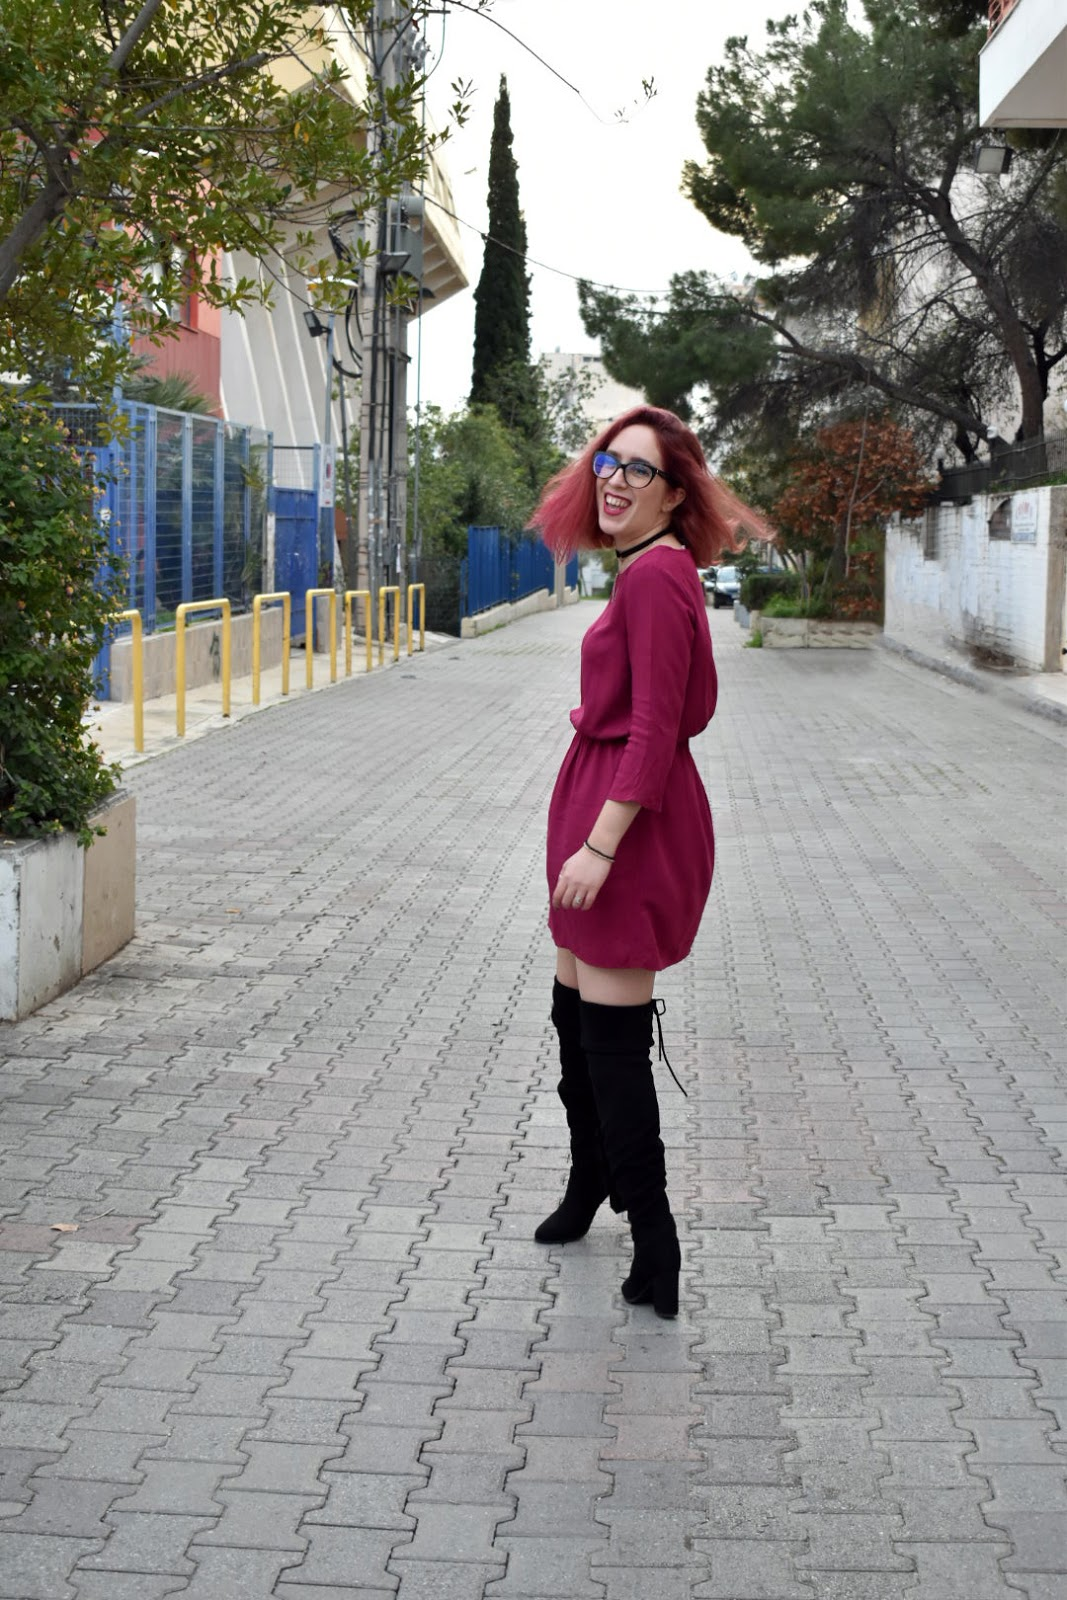 spotlights on badwolf, anna keni, anna, fashion, makeup, redhead,glasses, girl with glasses, Bad Wolf,fashion blogger,greek girl, greek fashion blogger, dress, magenta, h&m, spring,collection, trends, black, over the knee boots, otk, otkb,